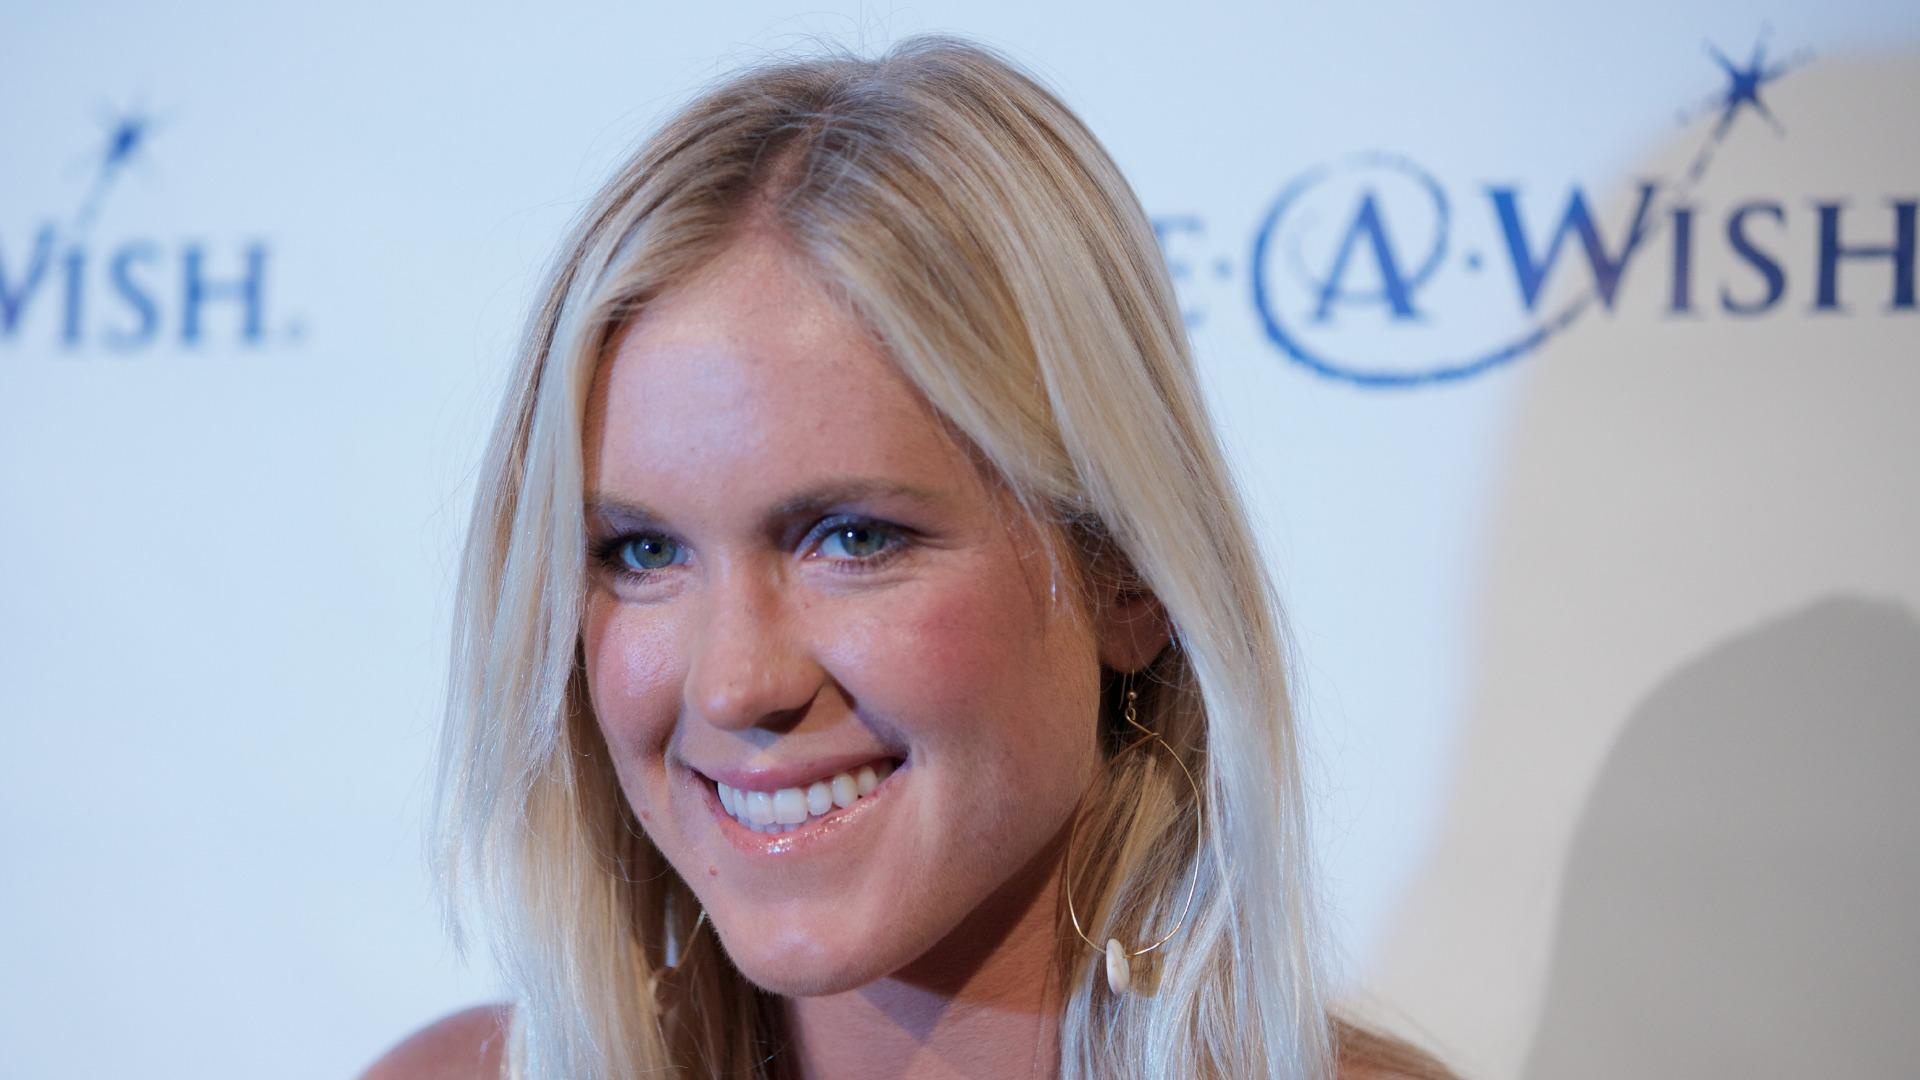 Celebs 101: 10 Things you didn't know about Bethany Hamilton